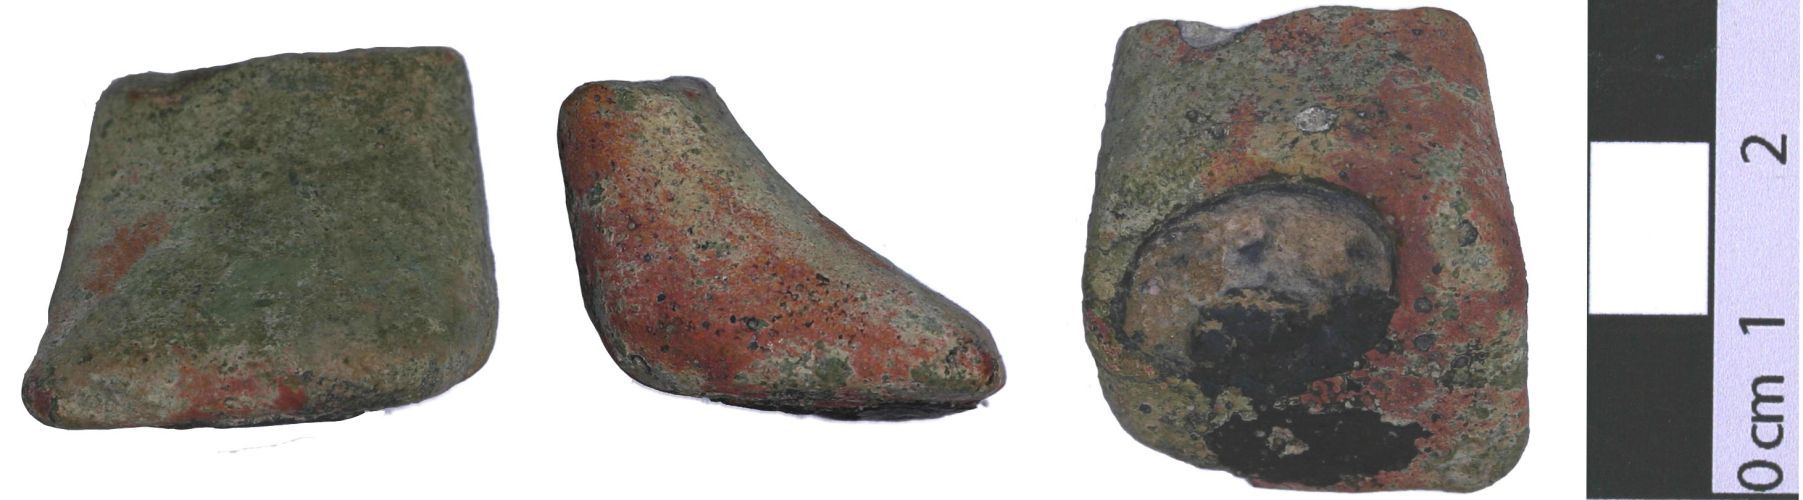 DOR-869351: 869351. Late medieval to Post-medieval vessel foot